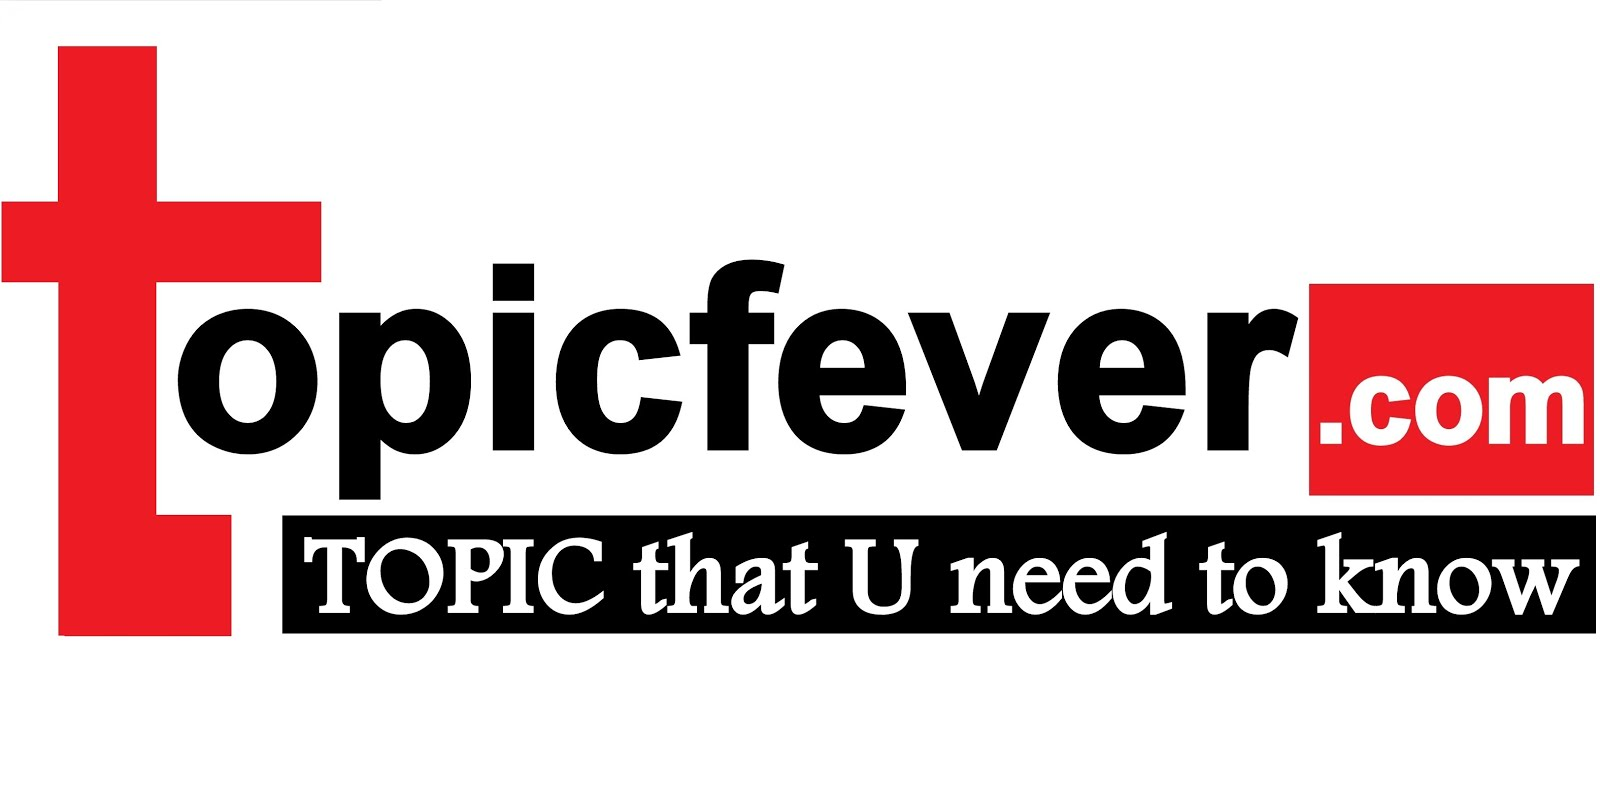 Topic Fever: TOPIC that U need to know